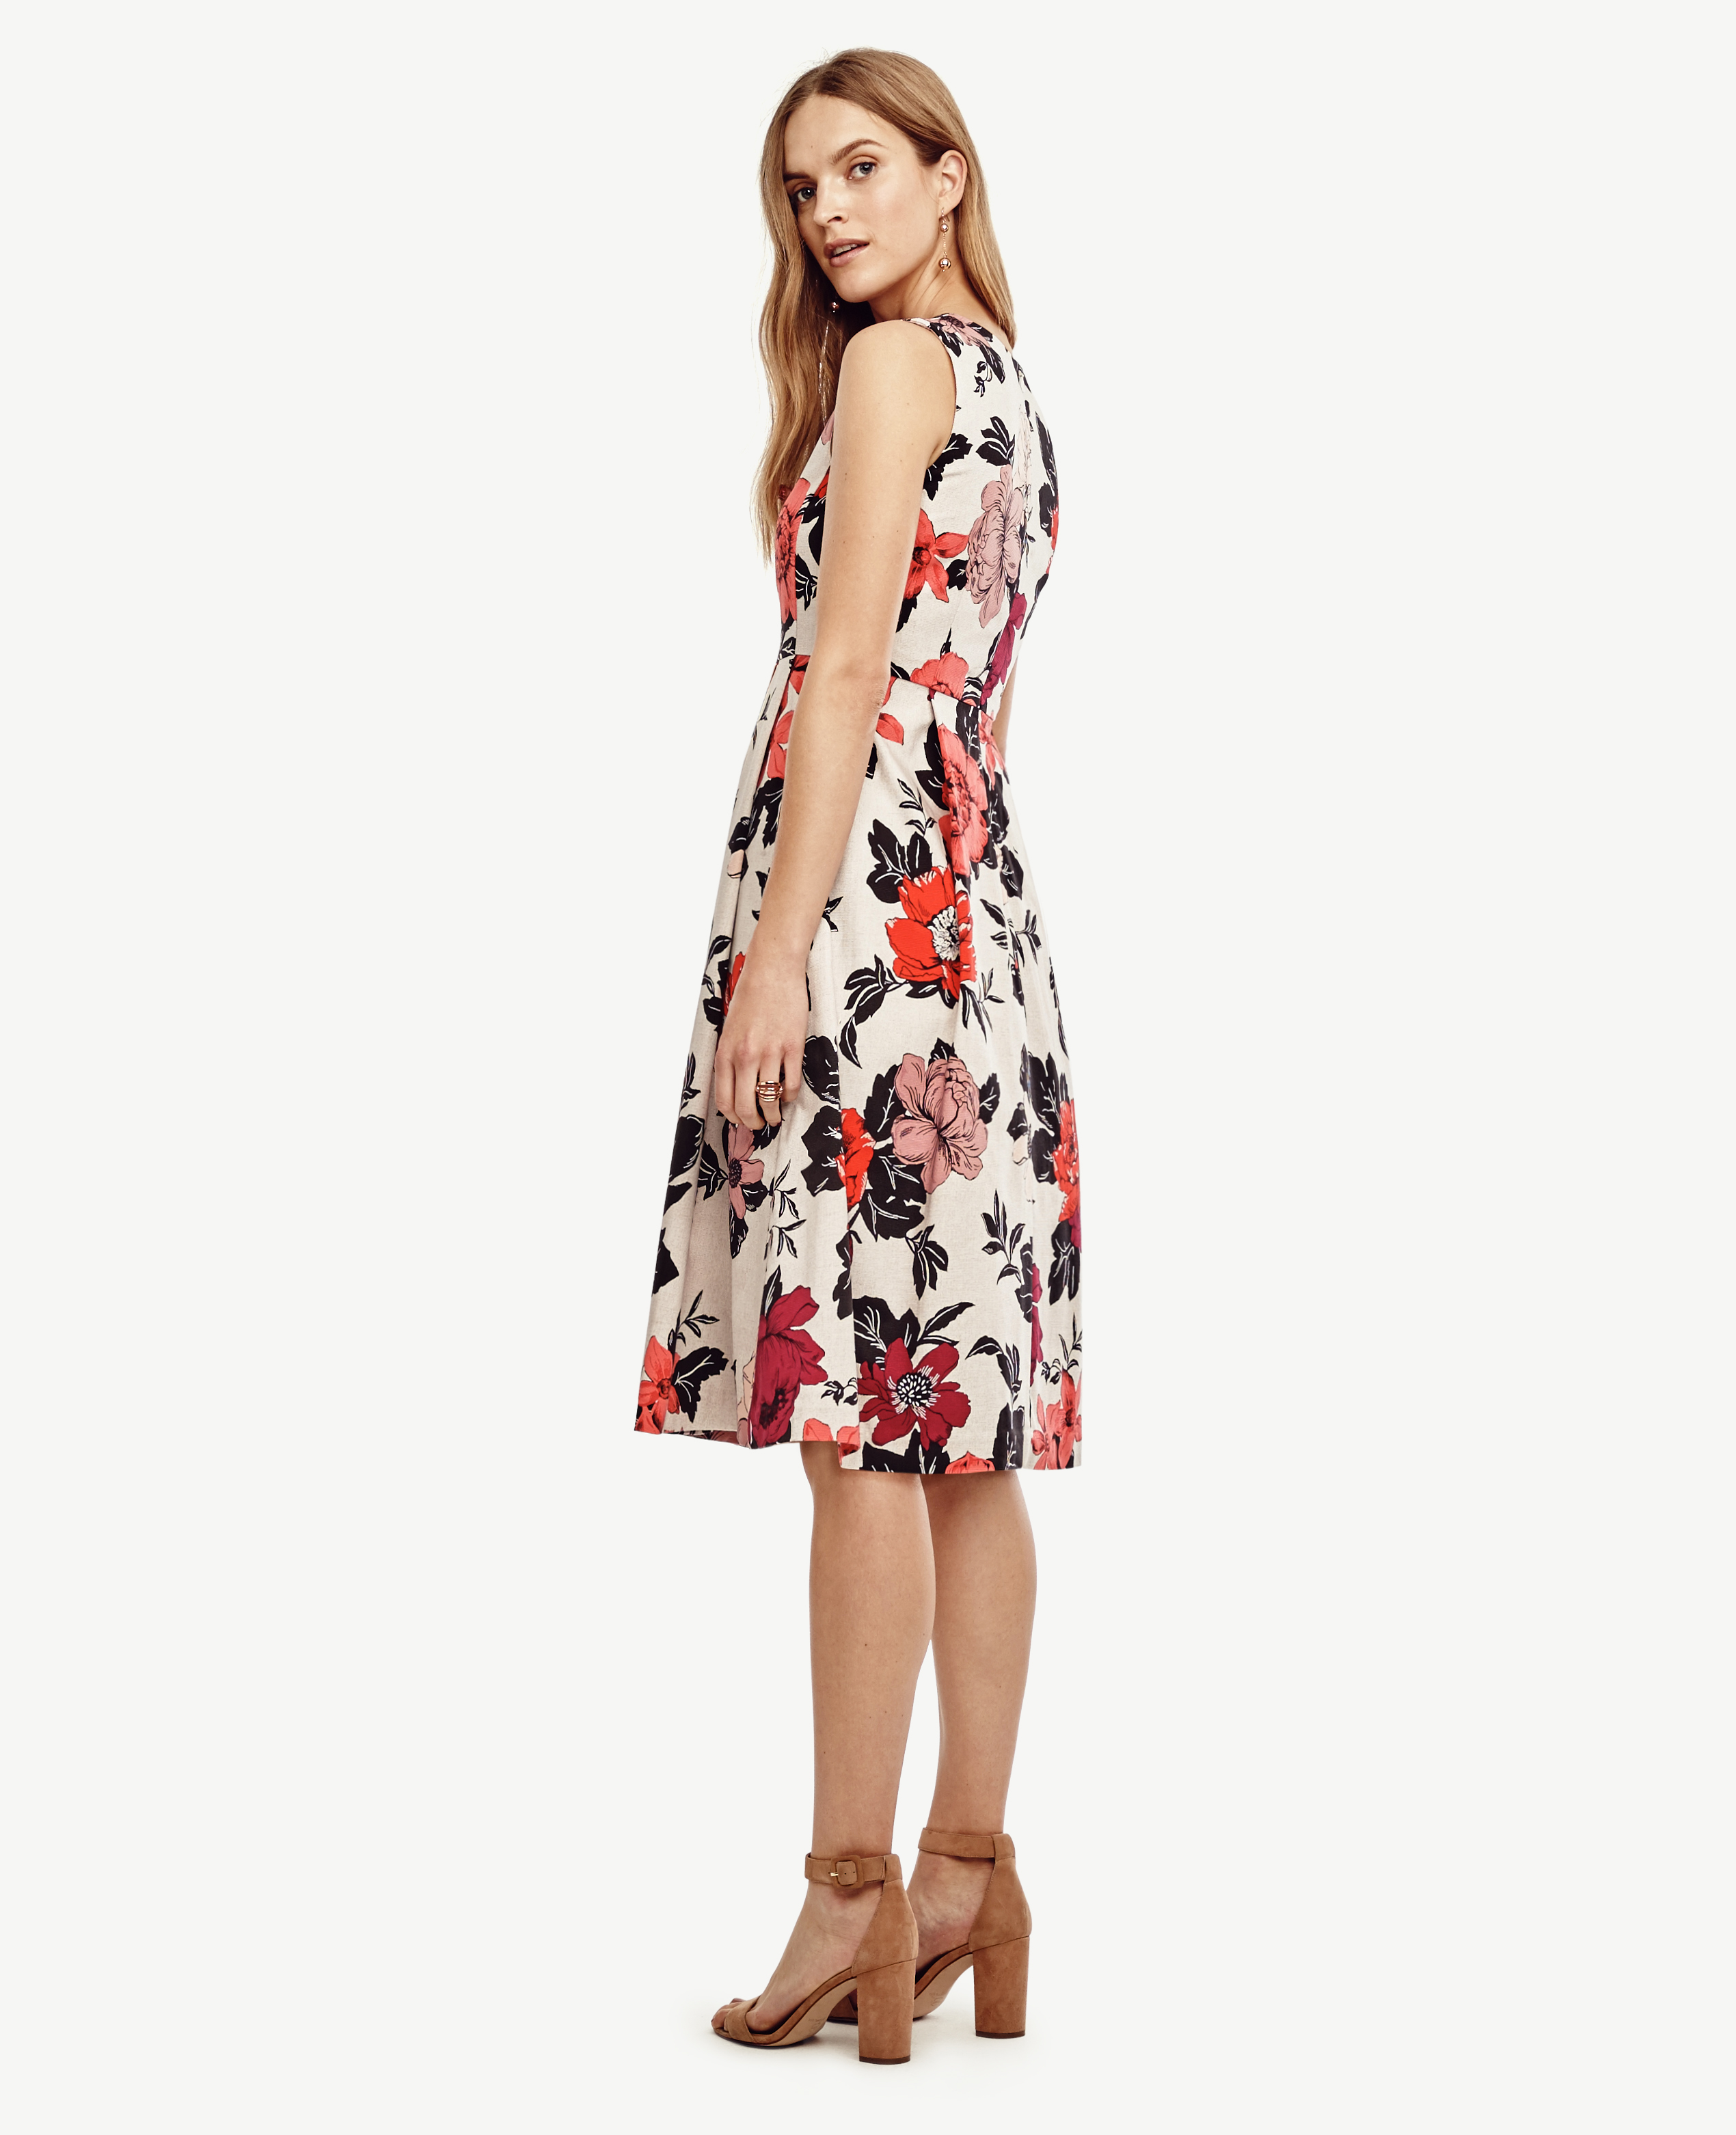 Ann Taylor Petite Sundrenched Floral Flare Dress In Red Lyst